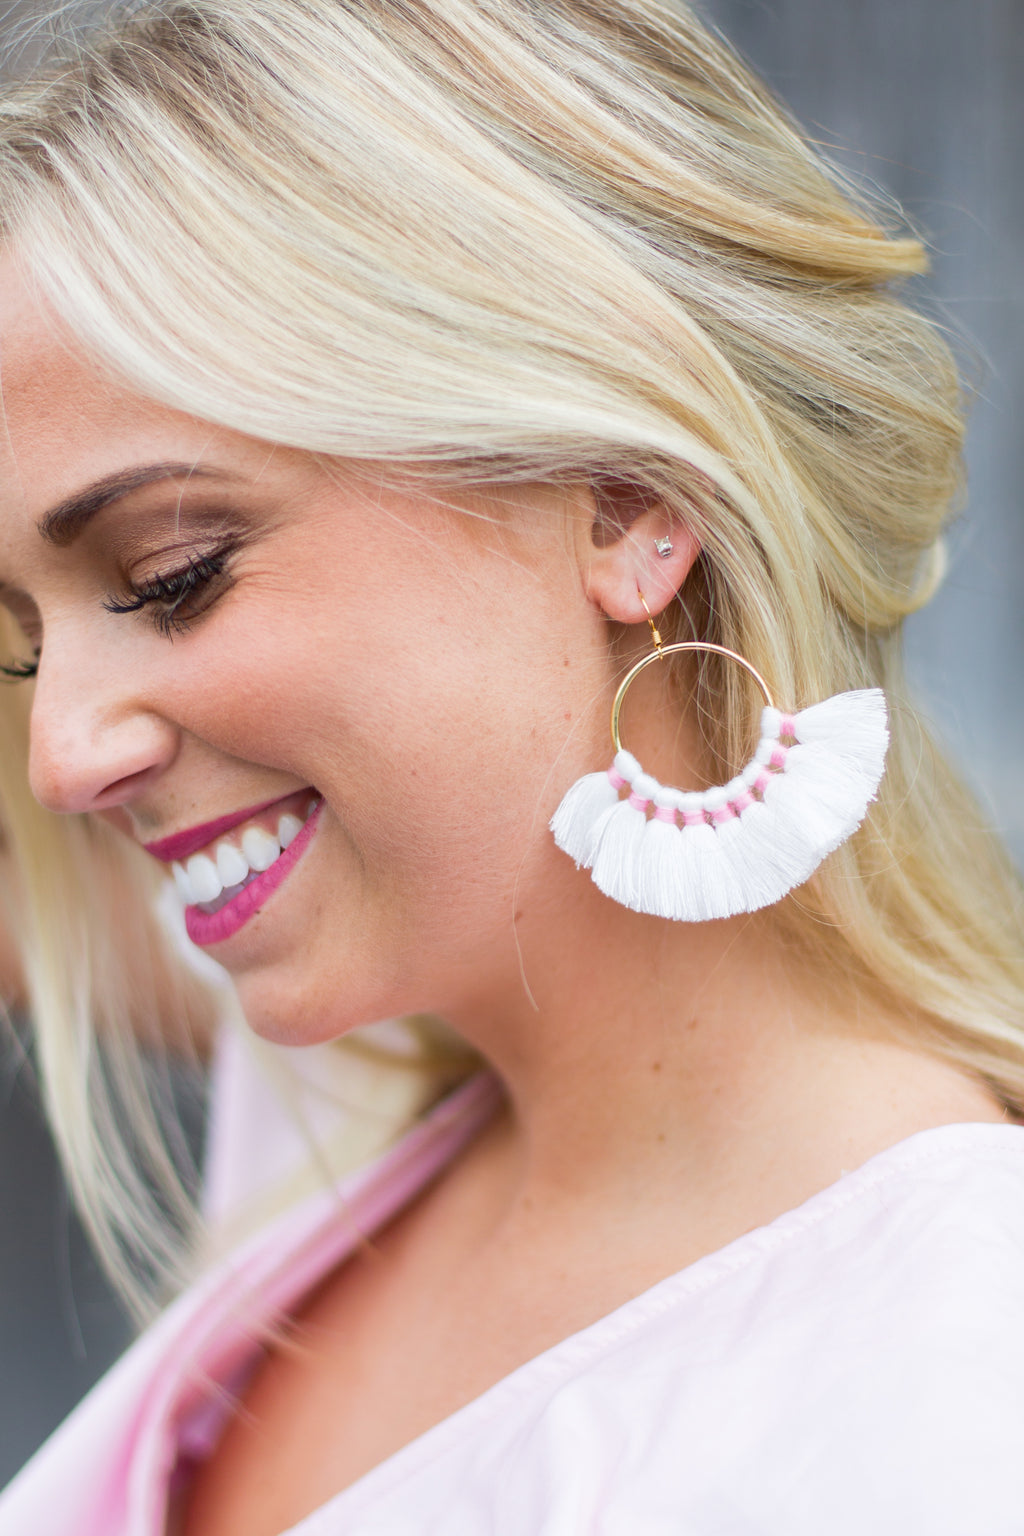 Dolled Up Tassel Hoop Earrings - White